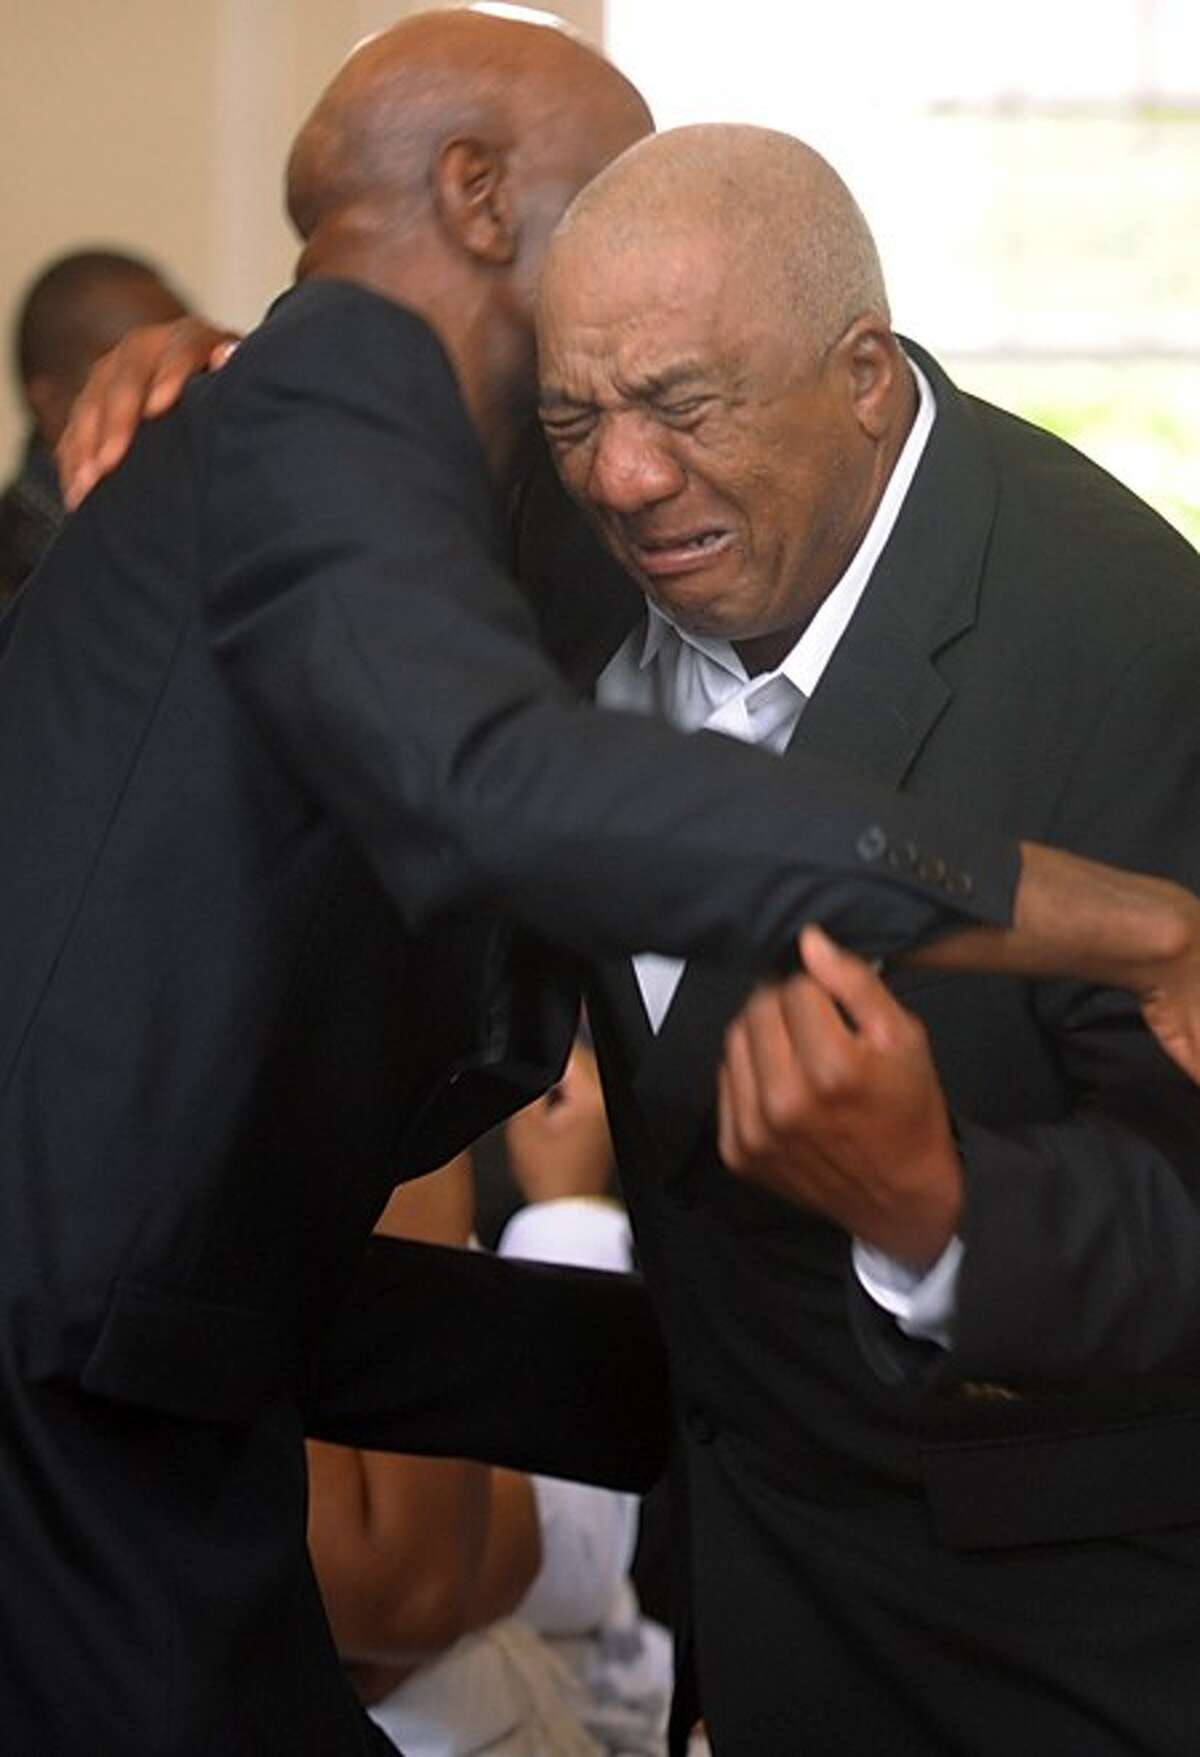 John Mosby grieves with good friend Amos Brown Sr before the funeral service of Amos Brown Jr. at the First Congregational Church on the Green Tuesday morning. Hour photo / Erik Trautmann